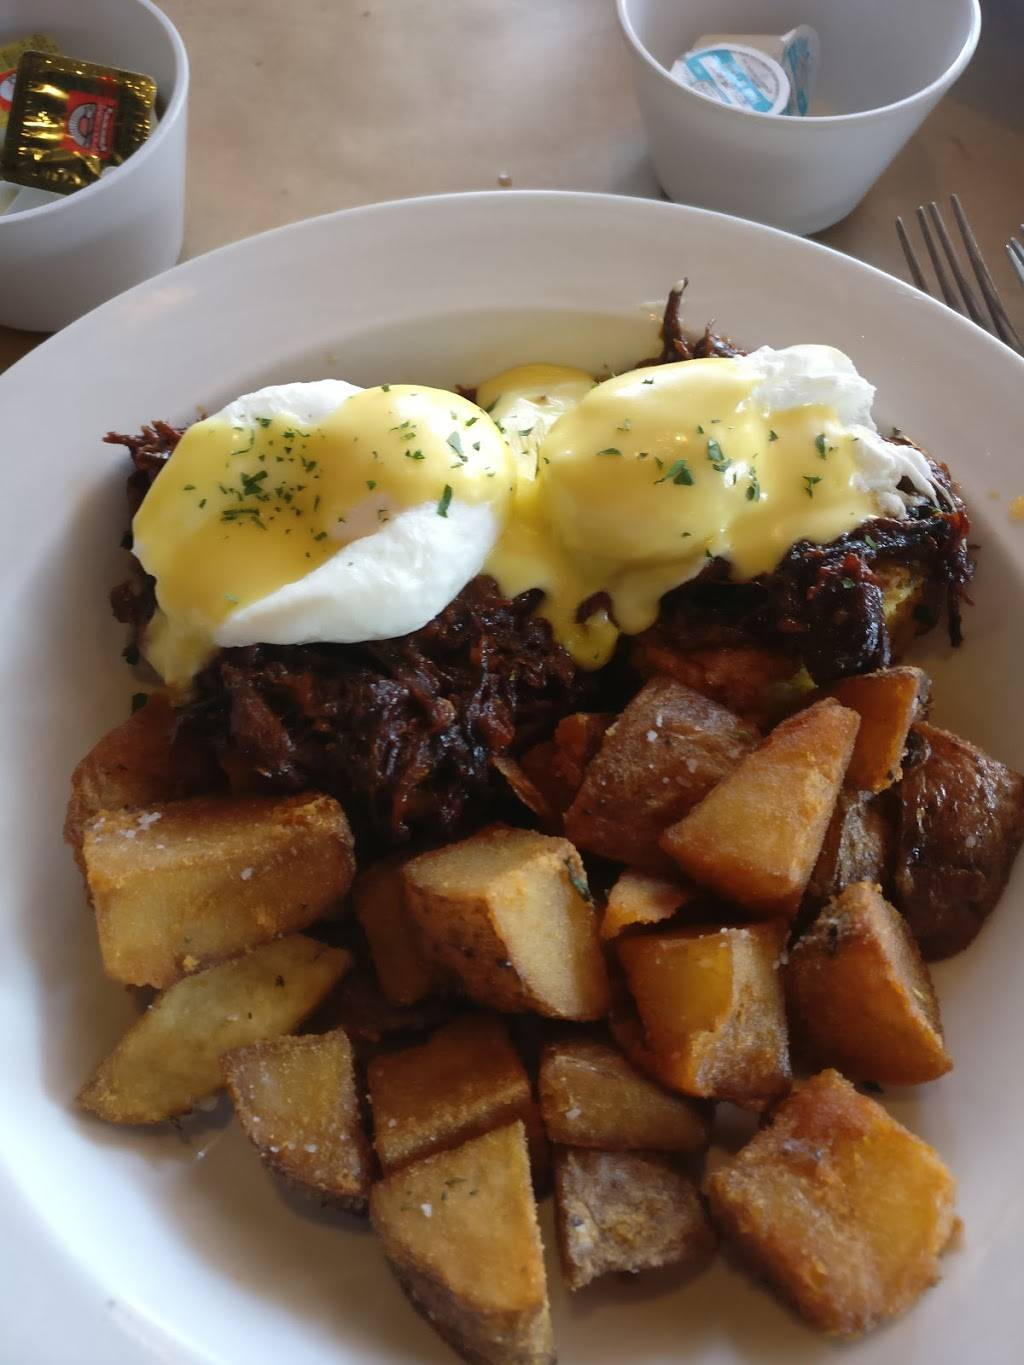 Cellars Bar and Grill | restaurant | 5900 N Broadway, Chicago, IL 60660, USA | 7739441208 OR +1 773-944-1208